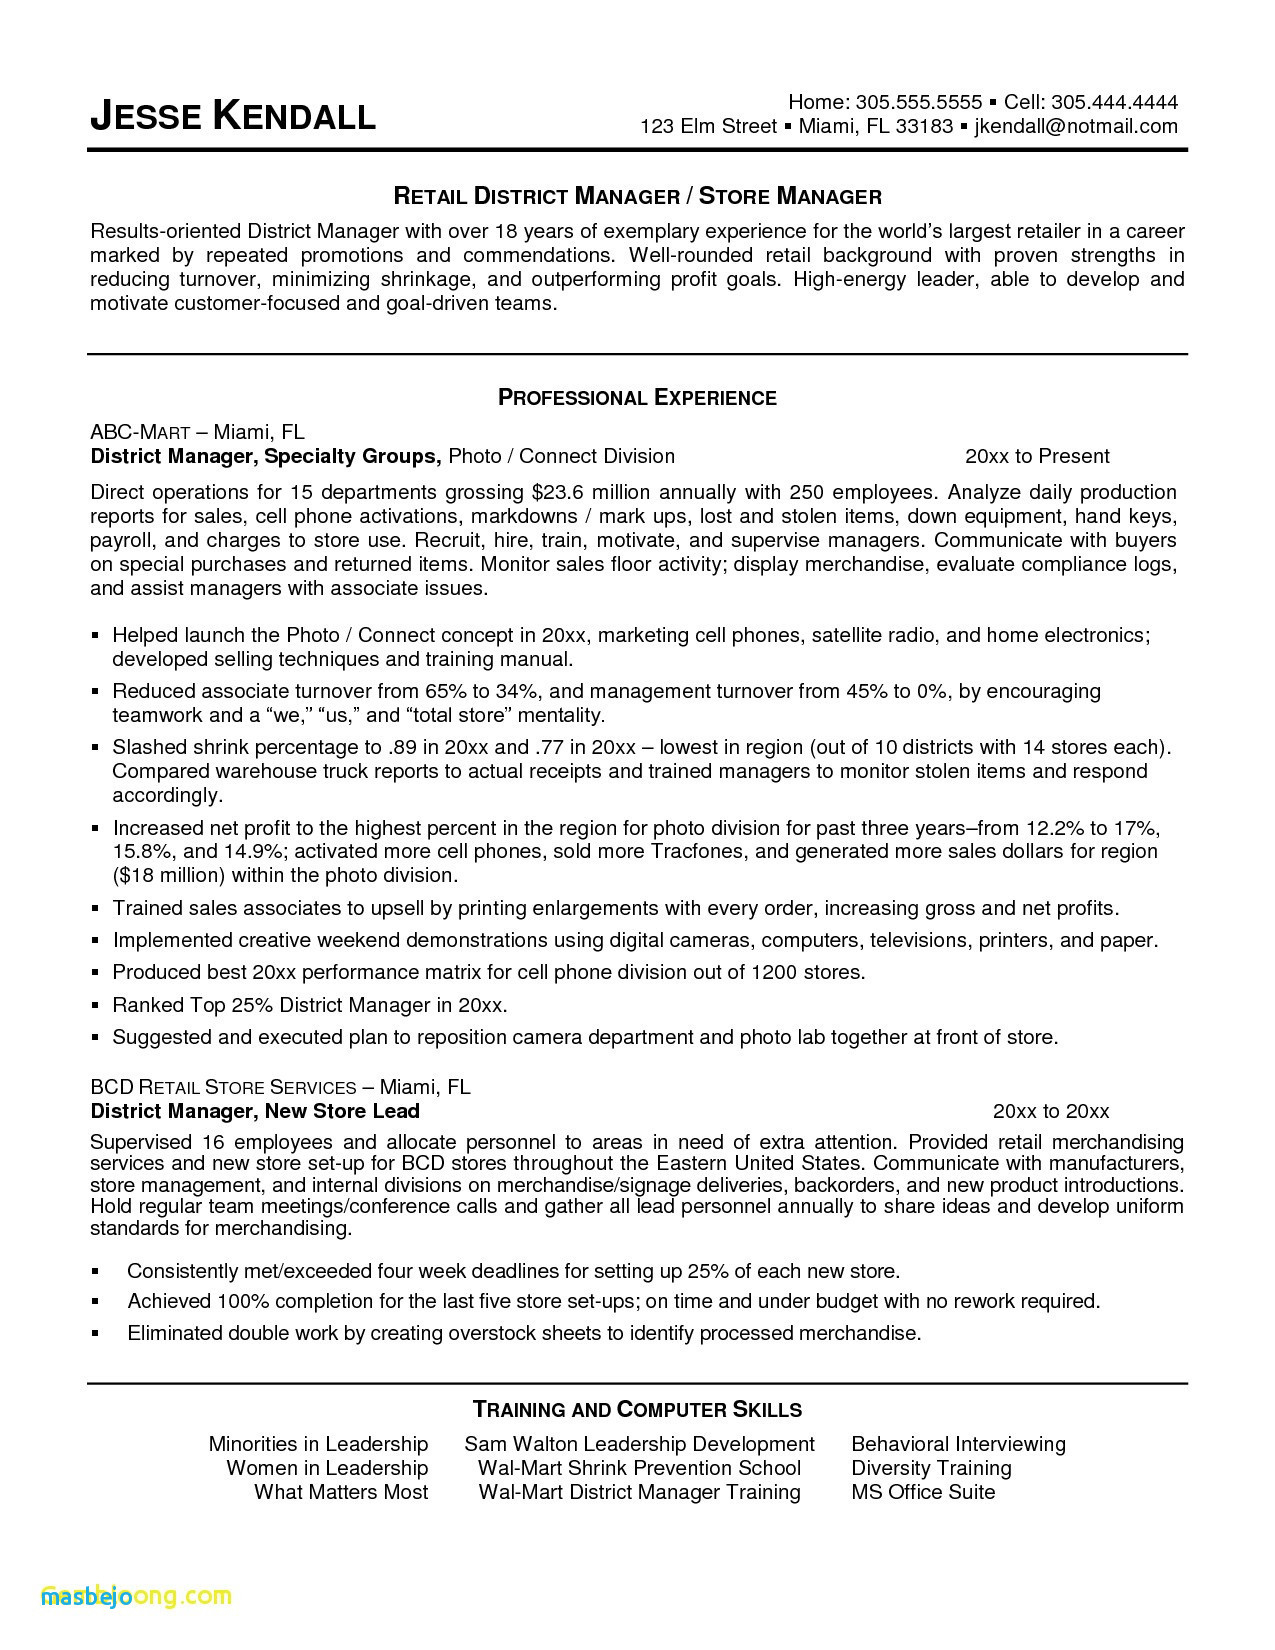 Office Manager Description for Resume - Fice Manager Resume Pg and Ug Dissertation Prize Resume